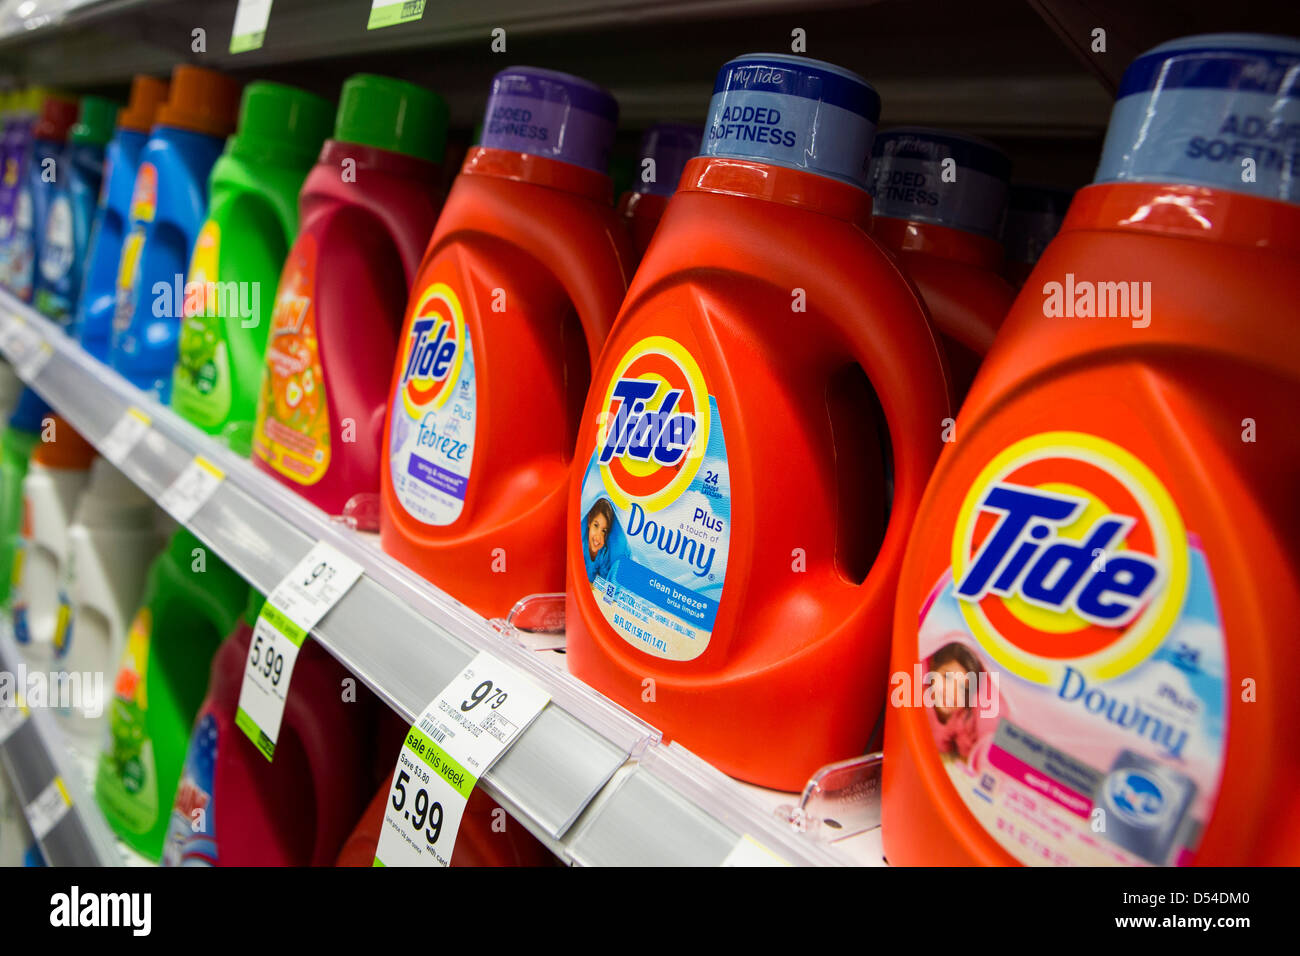 Tide laundry detergent on display at a Walgreens Flagship store.  - Stock Image